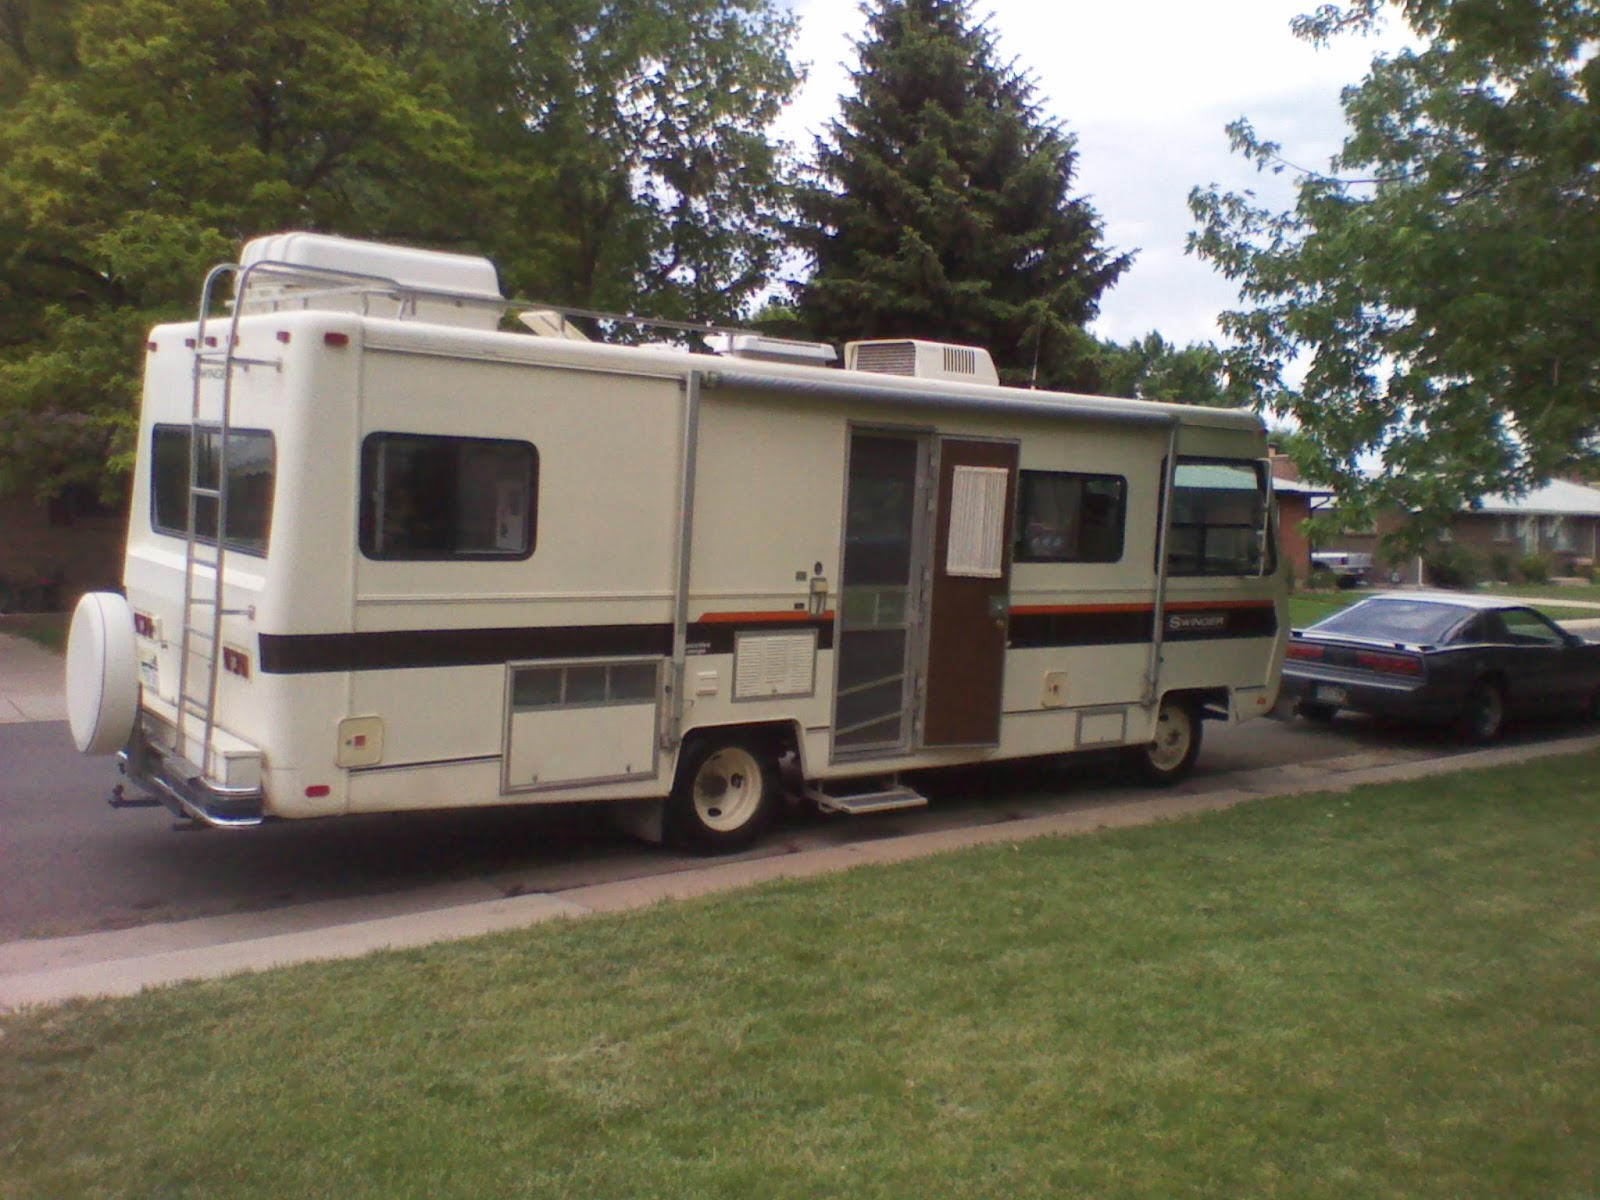 hight resolution of this is the motorhome parked in front of the house just after purchase 2011 generator both gas tank fills power step awning frig vent all located on